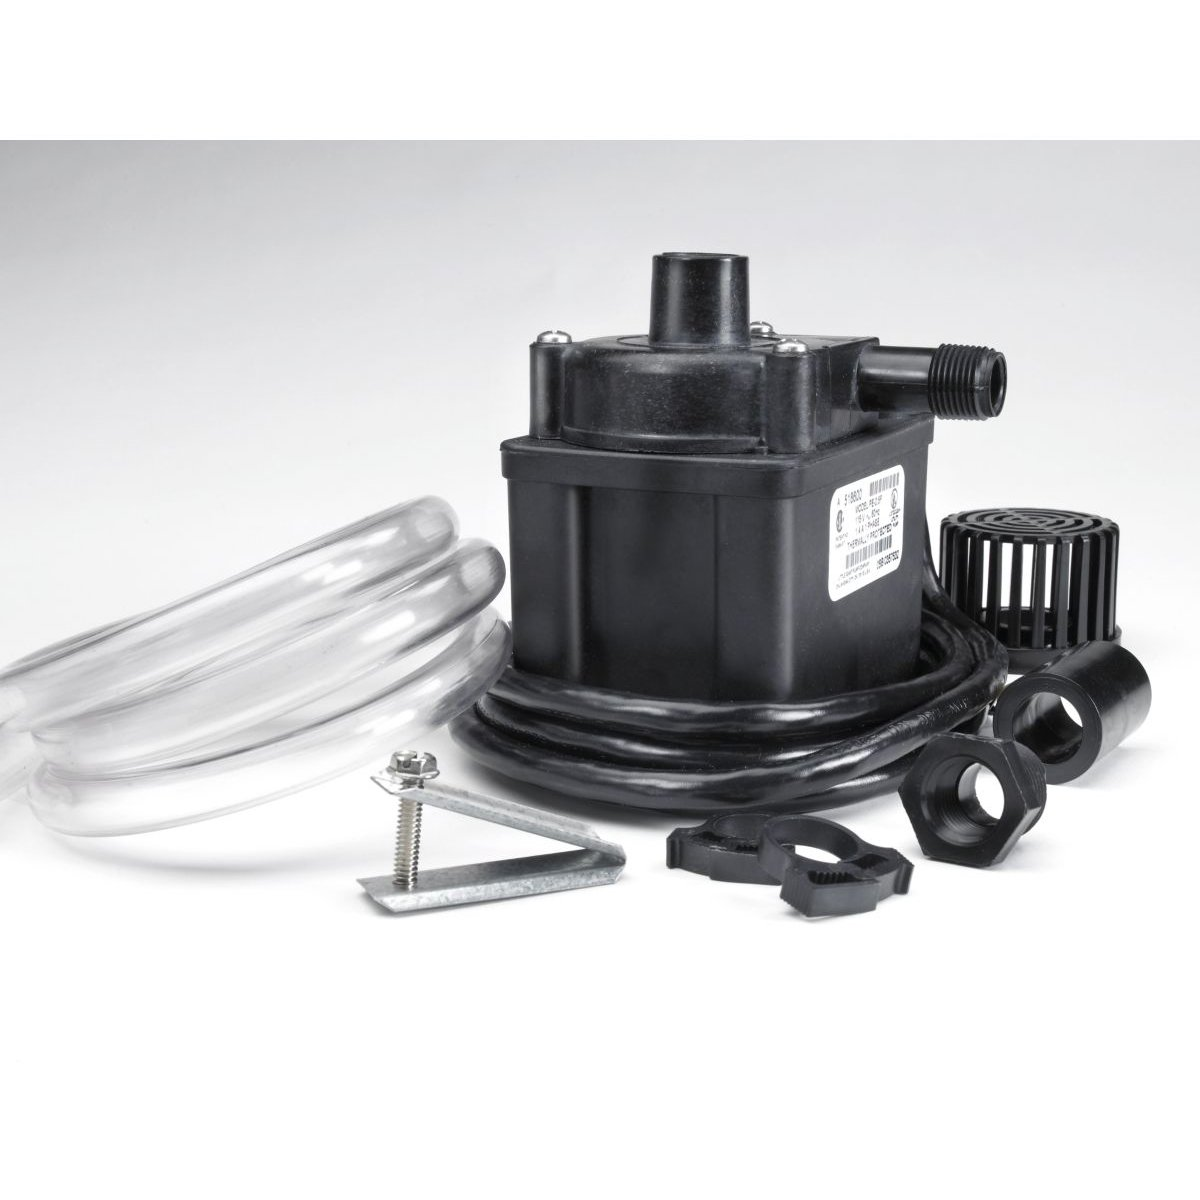 Design Toscano UL-Listed, Indoor/Outdoor, 450 GPH Pump Kit